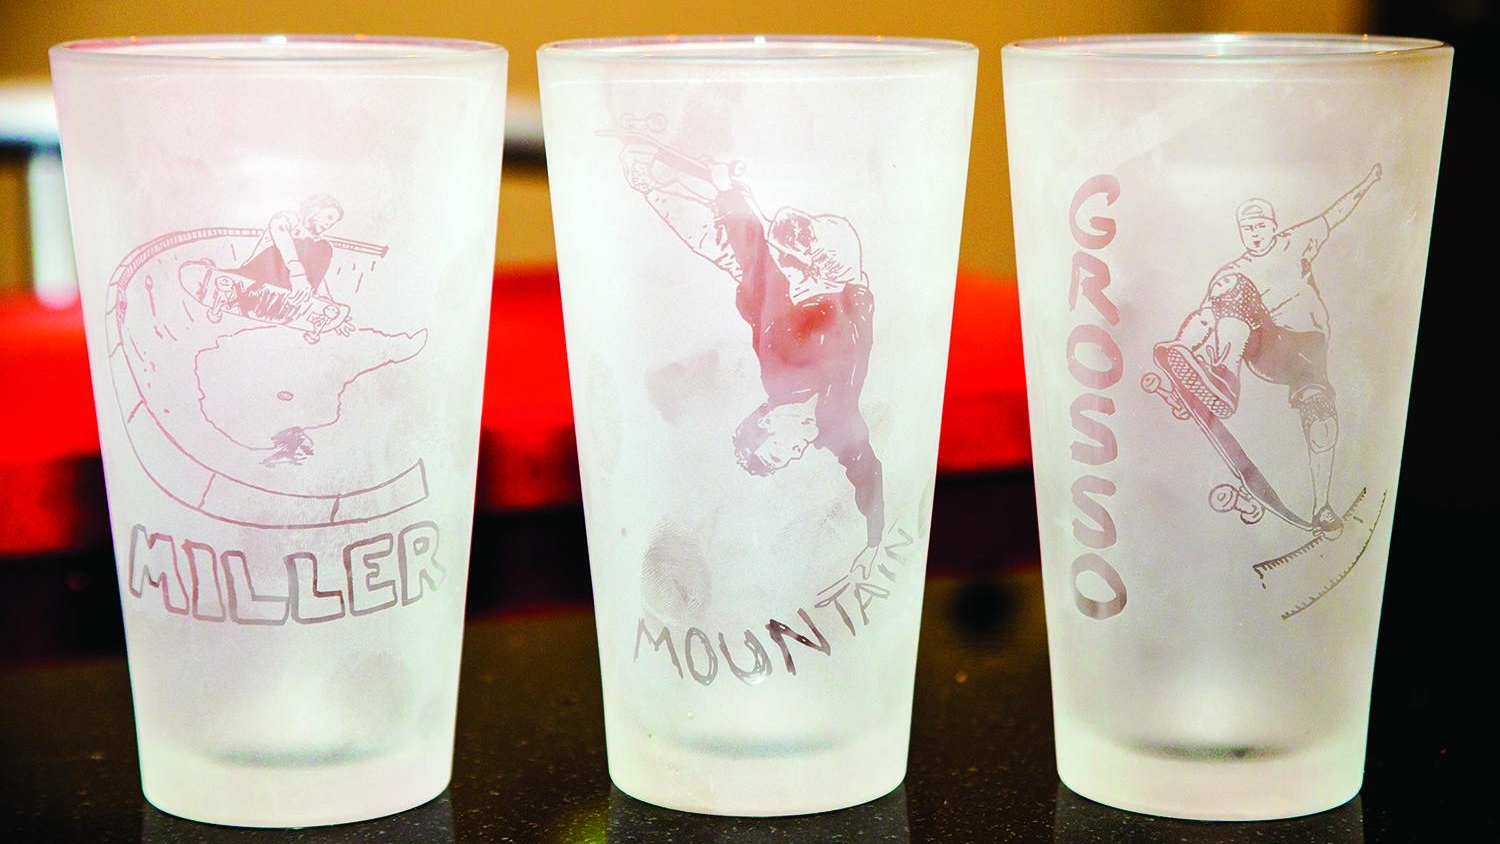 Skate Legends Pint Glasses featuring Professional Skateboarders Chris Miller, Lance Mountain & Jeff Grosso.